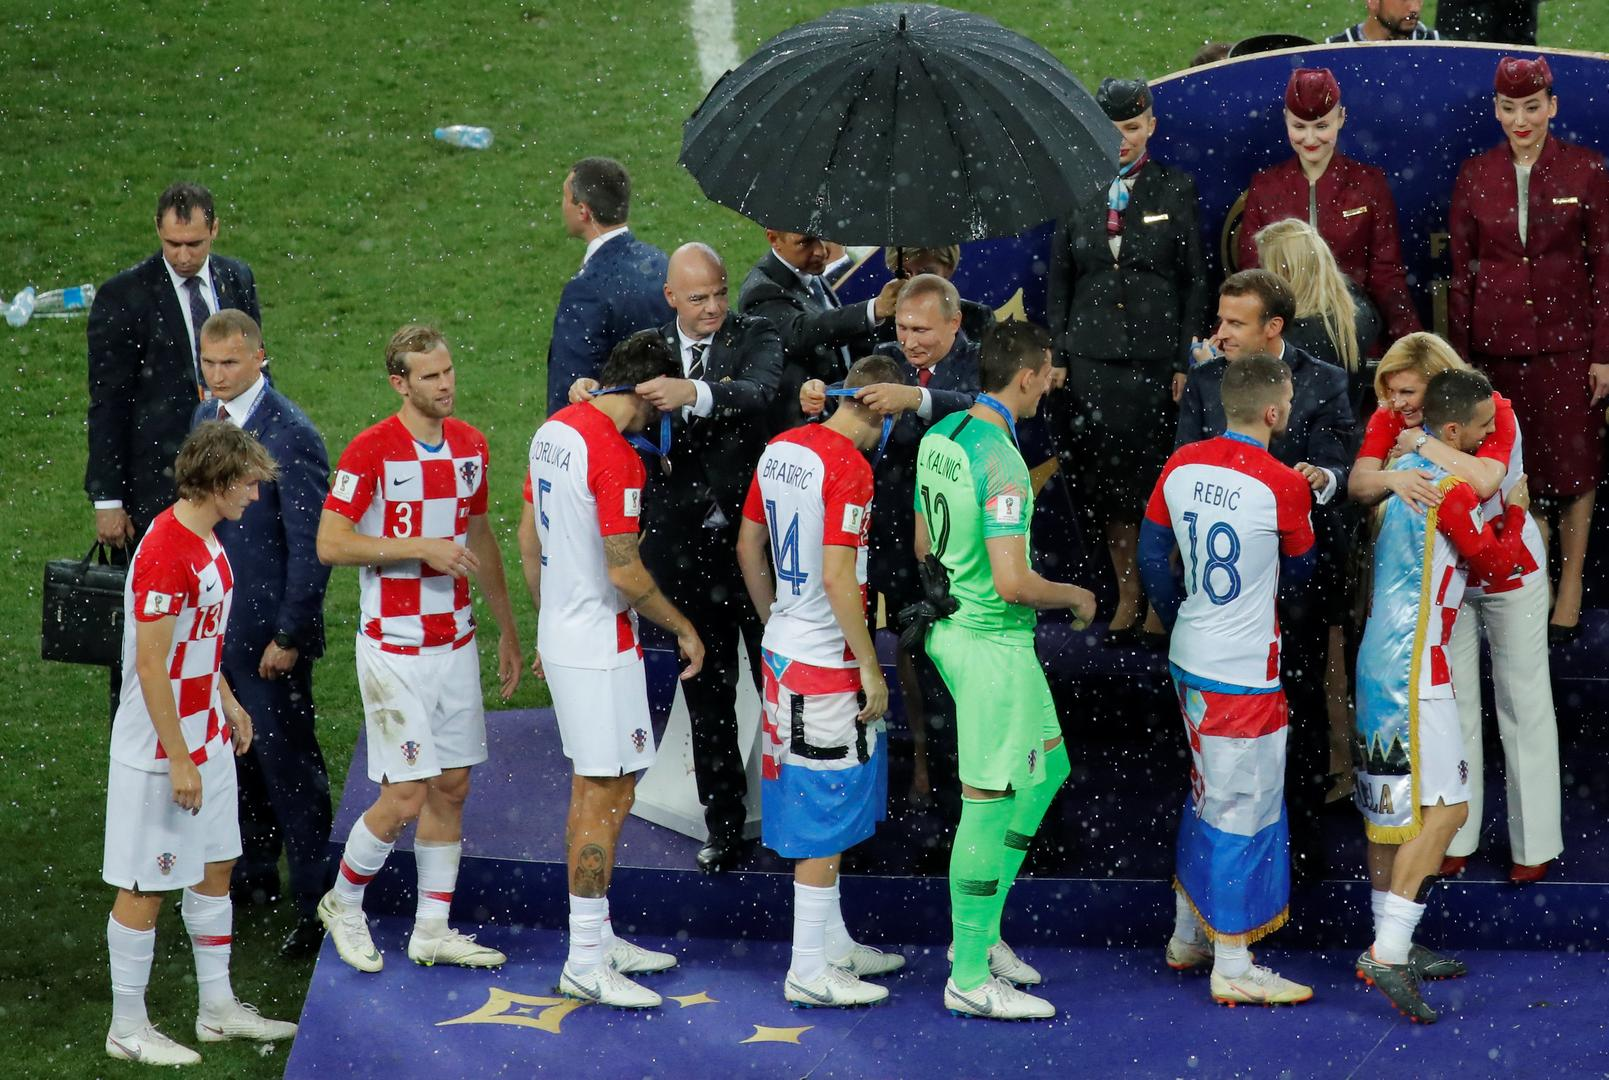 Here's why Putin had an umbrella while our presiding officer fell